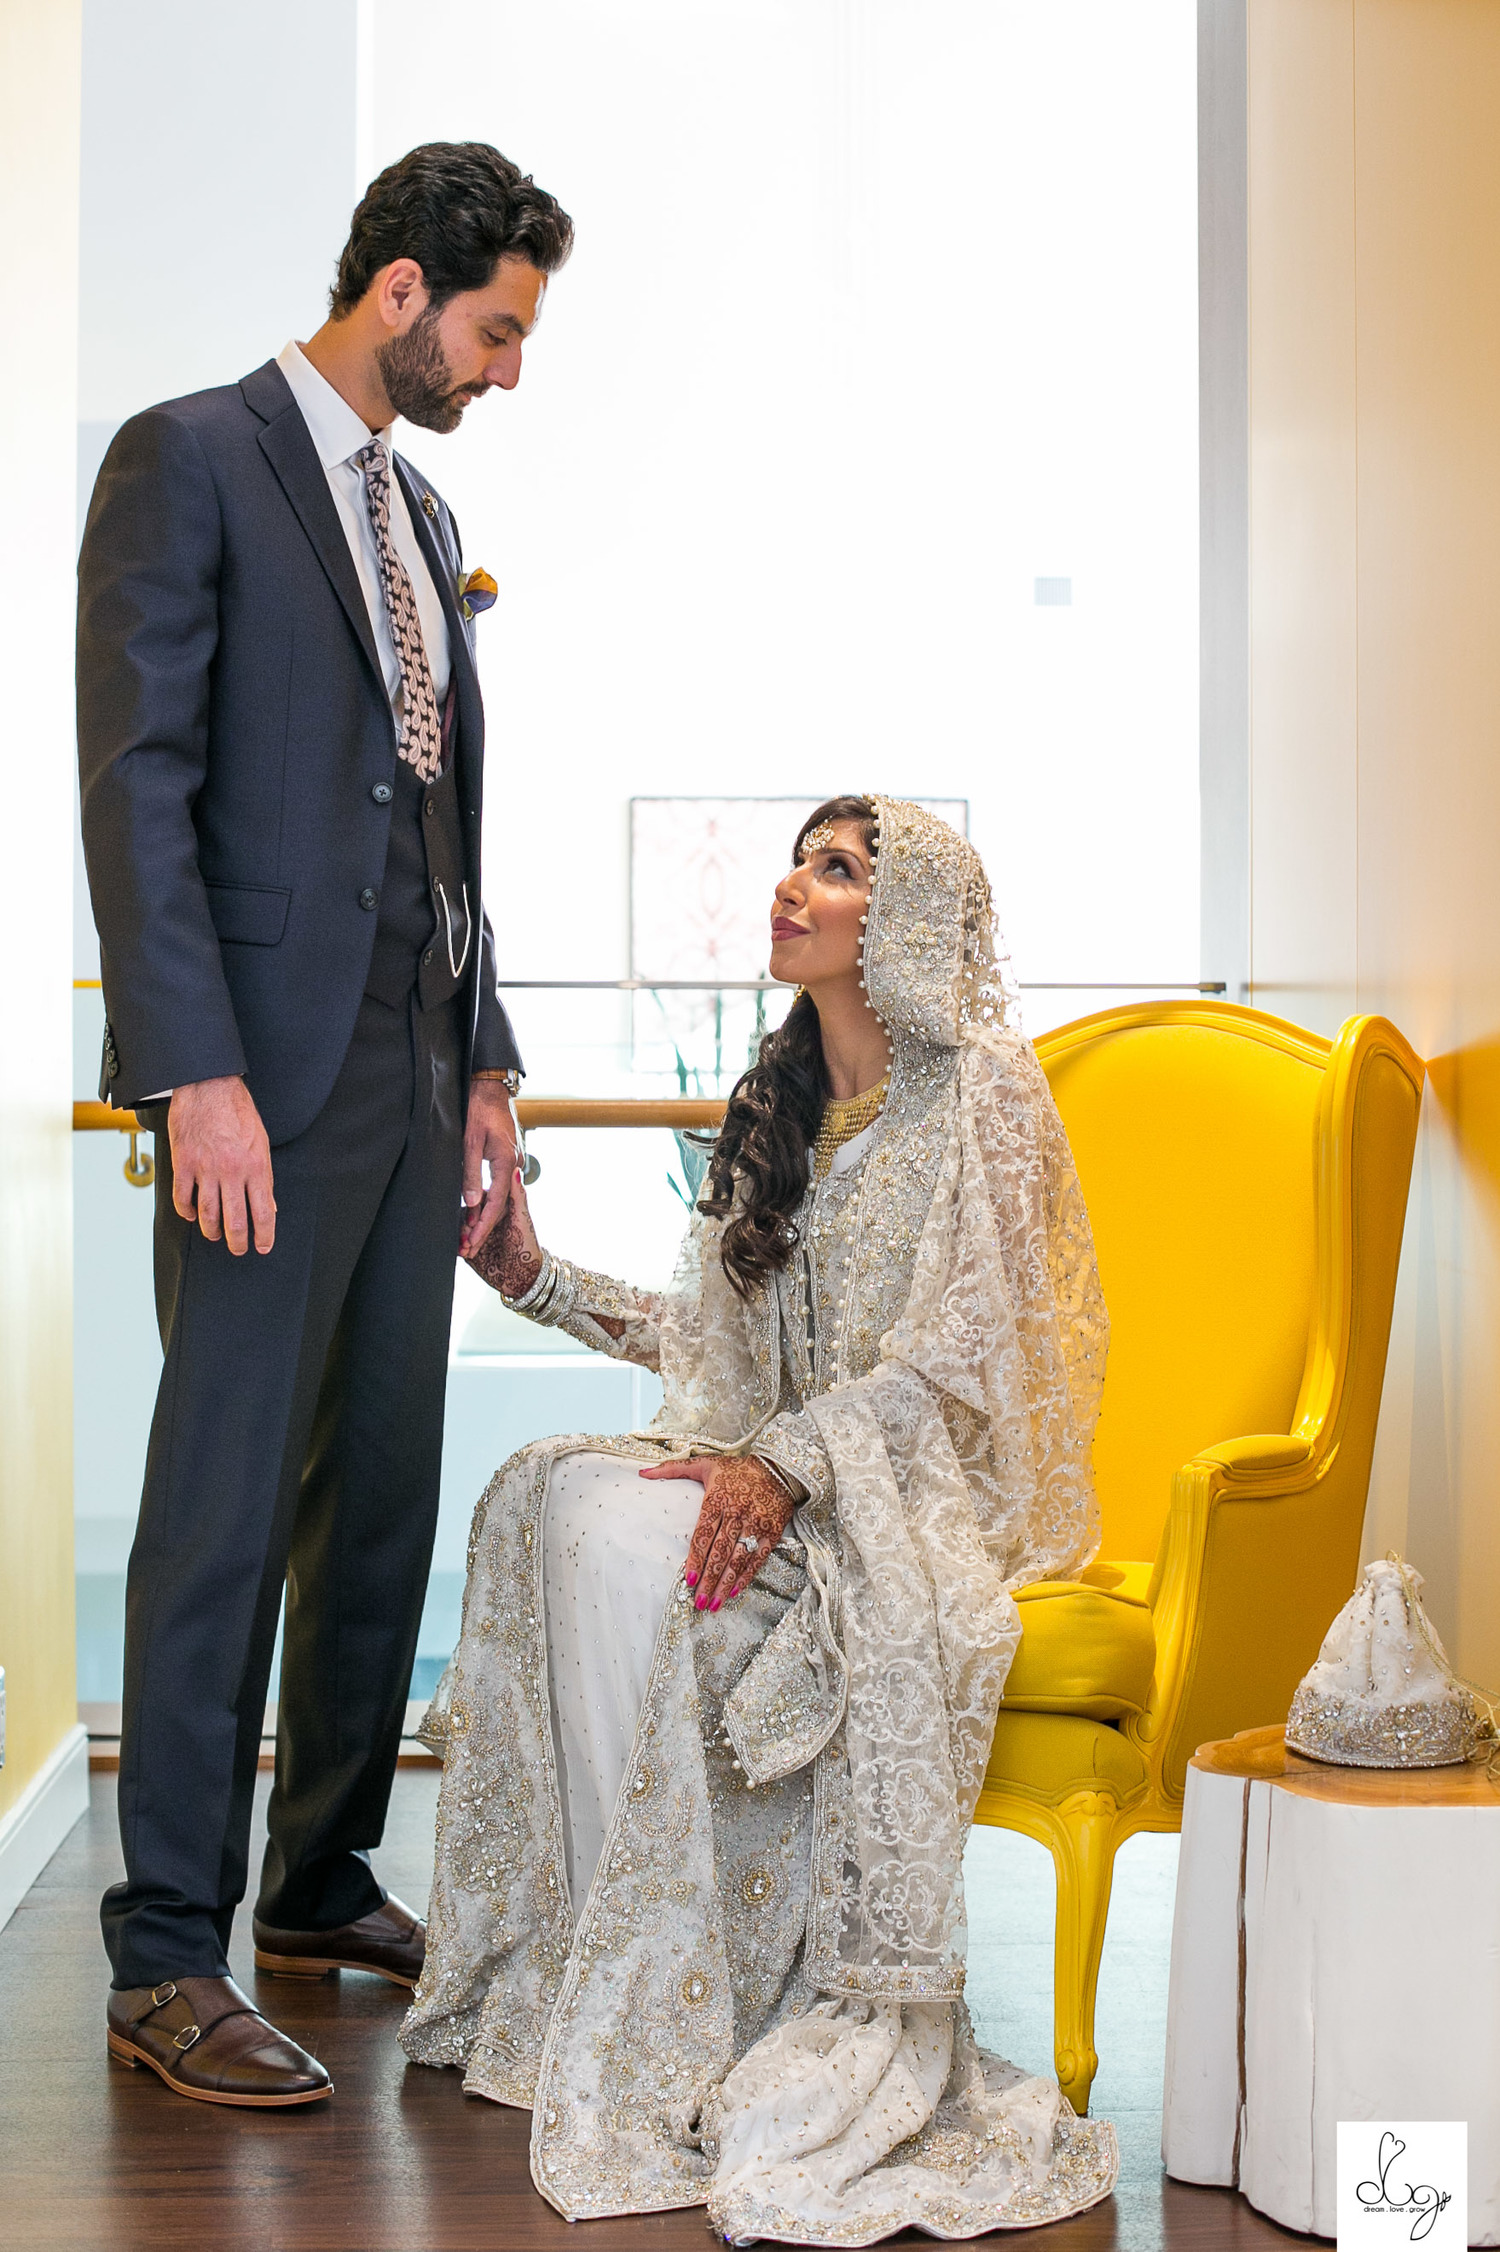 Narmeen+and+Izzy+Reception_Mailyne+Photography-2427.jpg